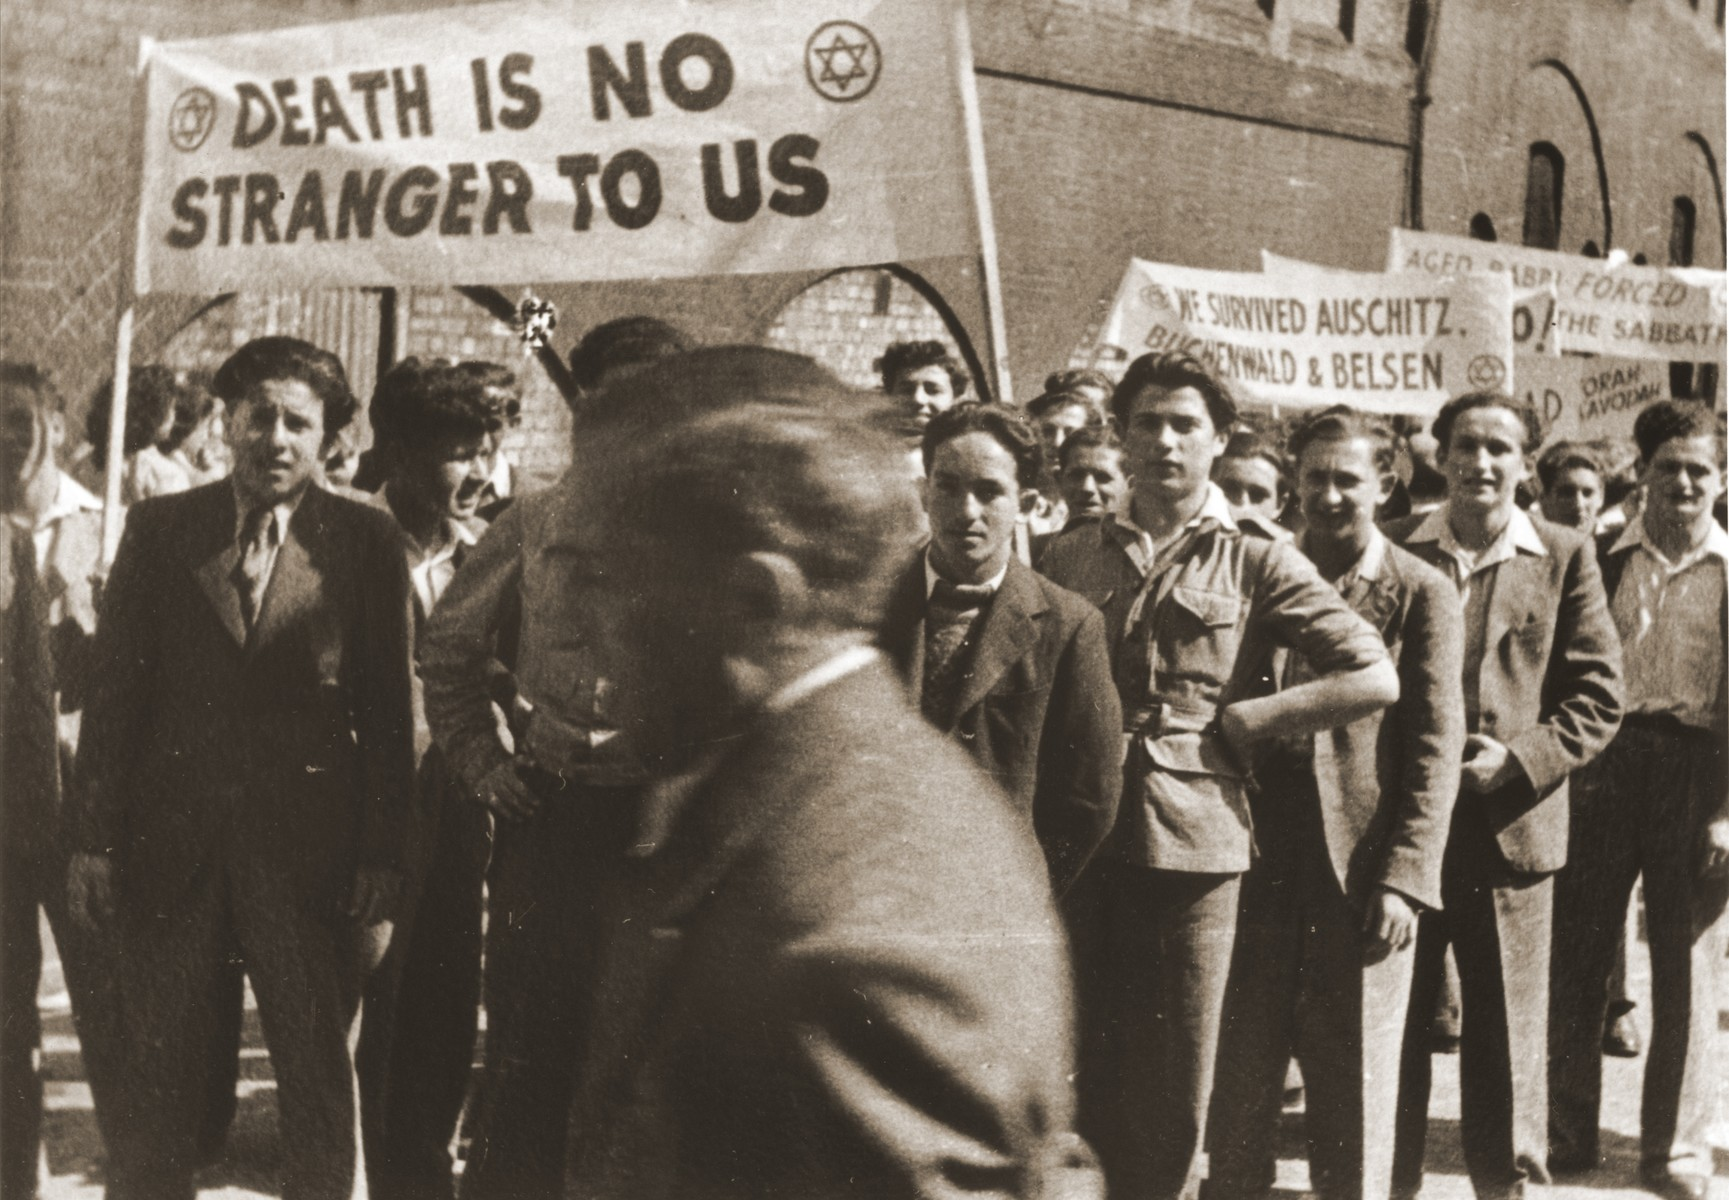 "Jewish youth who were brought to England on the orphans transport after the war protest against British policy in Palestine at a demonstration in Trafalgar Square, London.  The young men carry banners that read ""Death is no stranger to us"" and ""We survived Auschwitz, Buchenwald and Belsen"".  Moniek Goldberg is on the far right.  Also pictured are Harry Bolsum, Joel Renz and Jonny Fox."